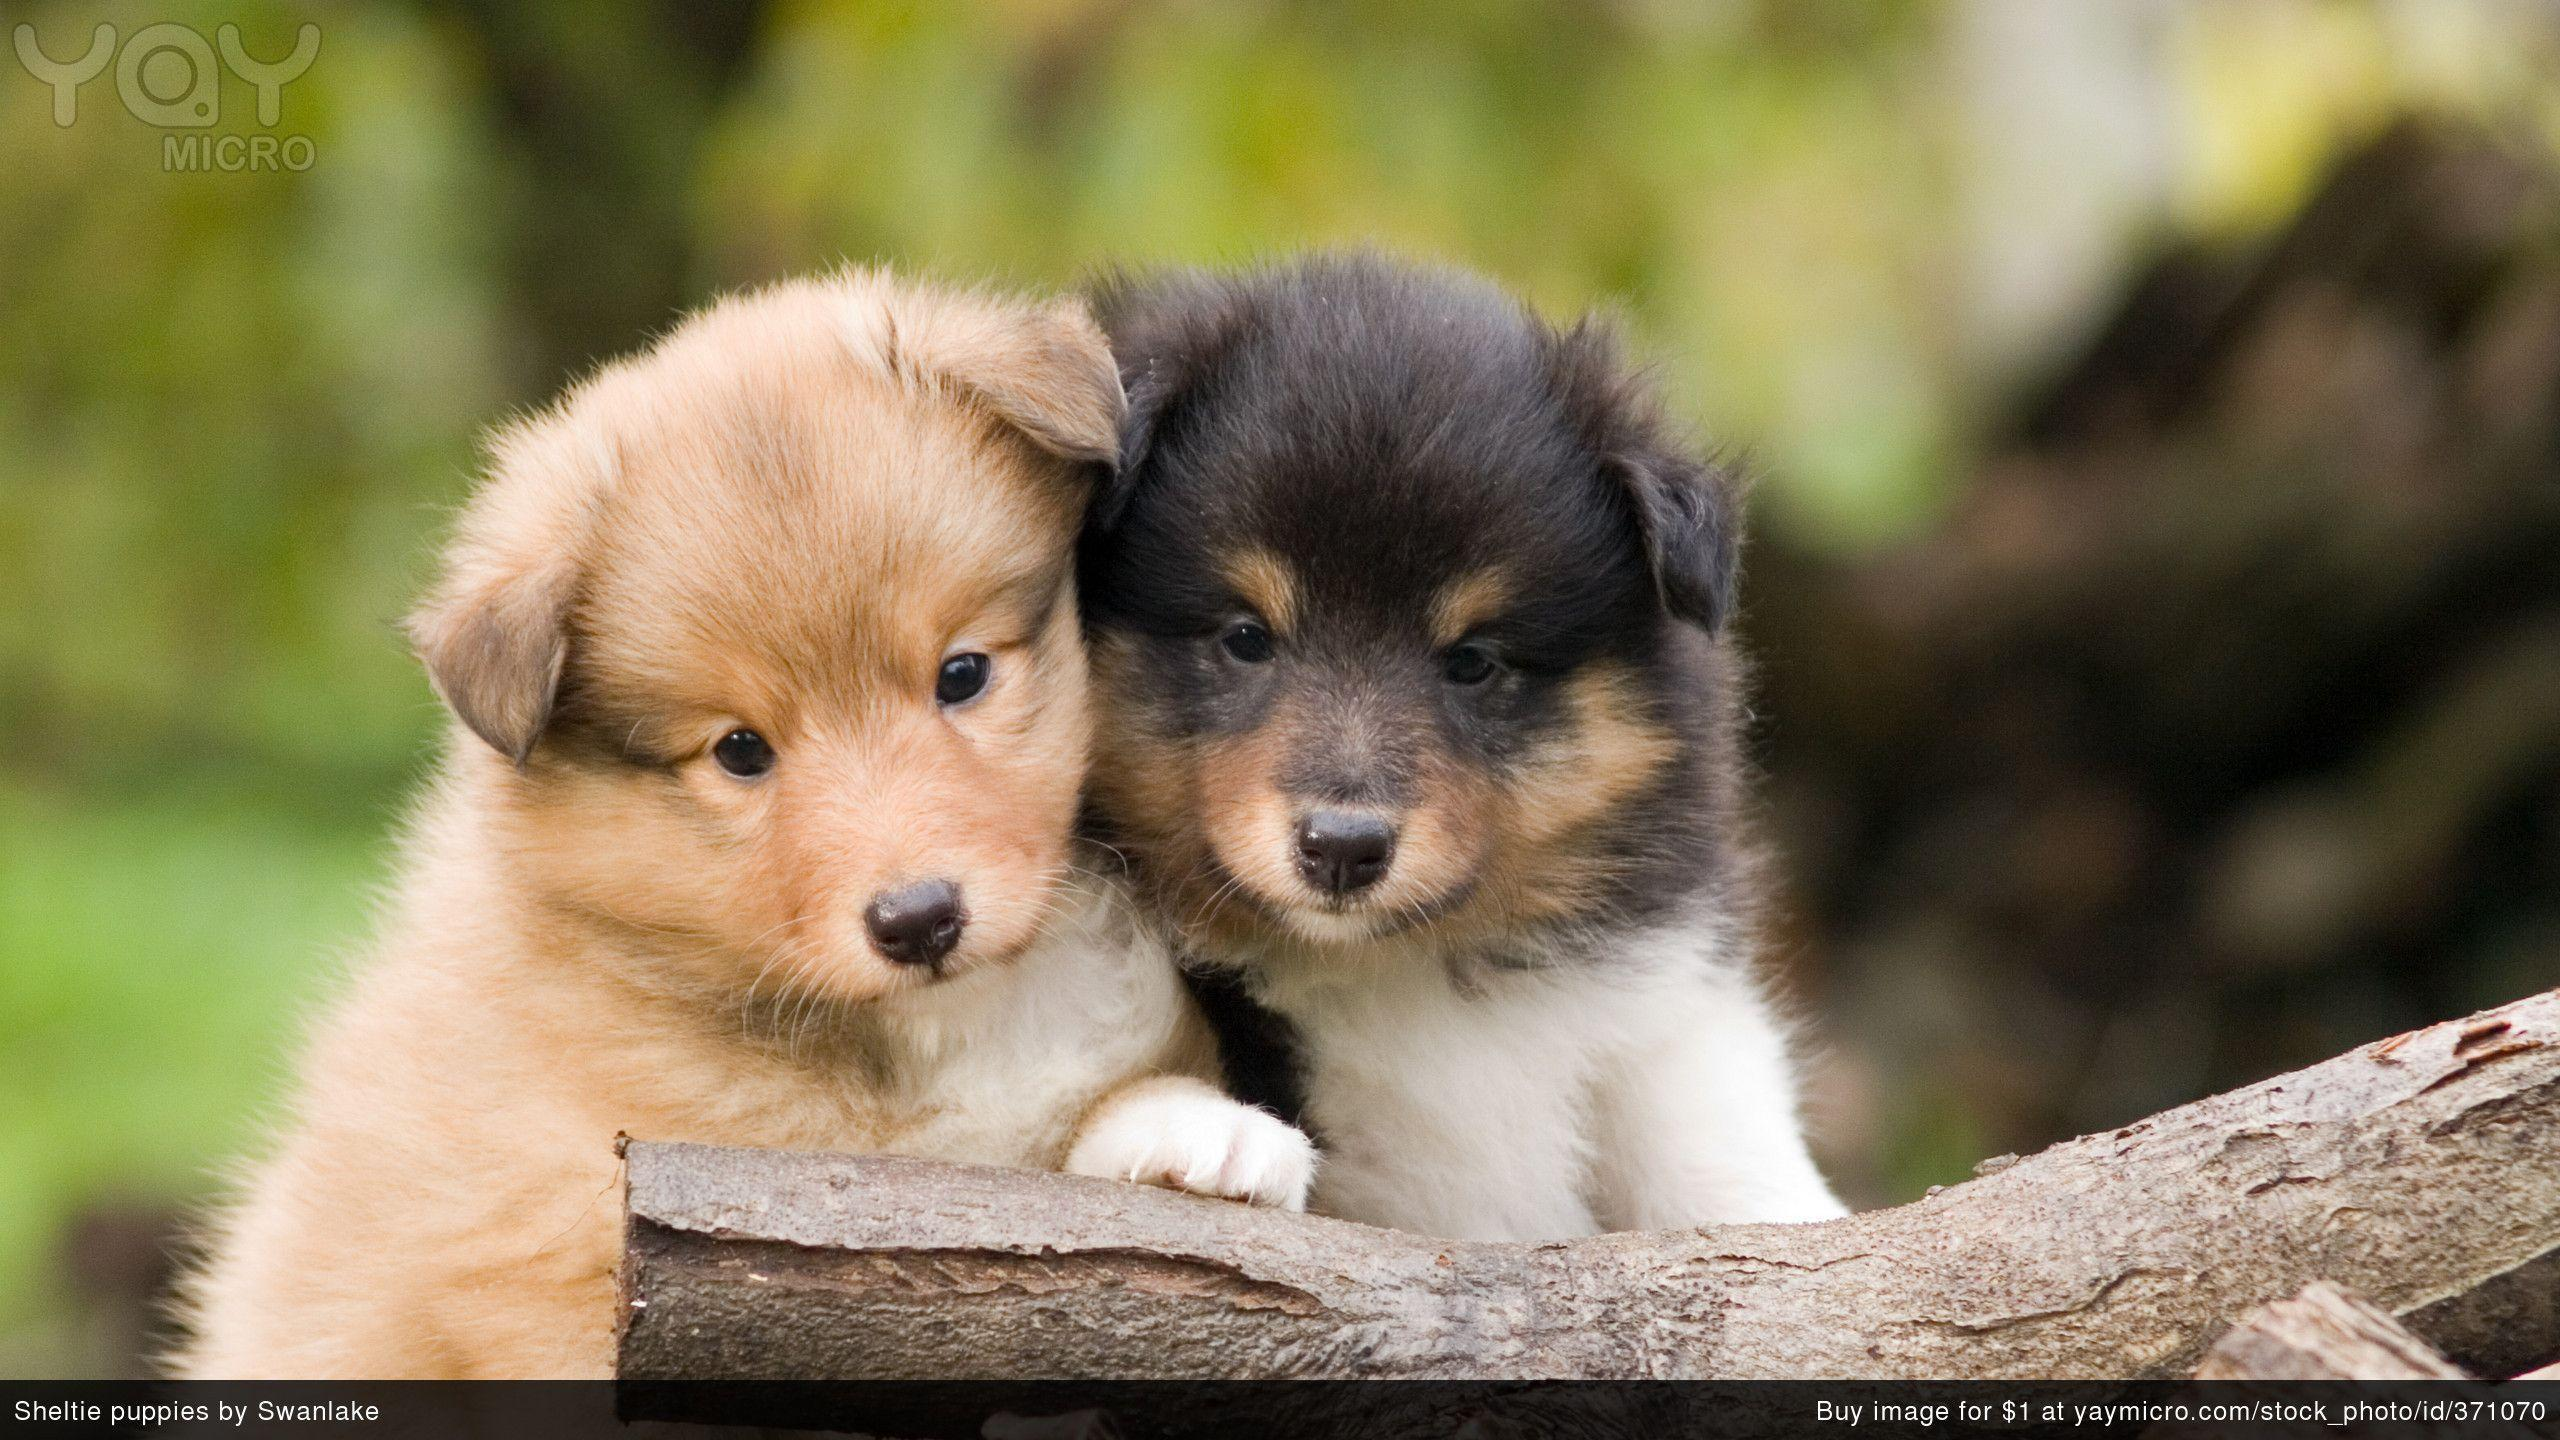 Cute Puppy Wallpapers Cute Puppy PC Backgrounds DY